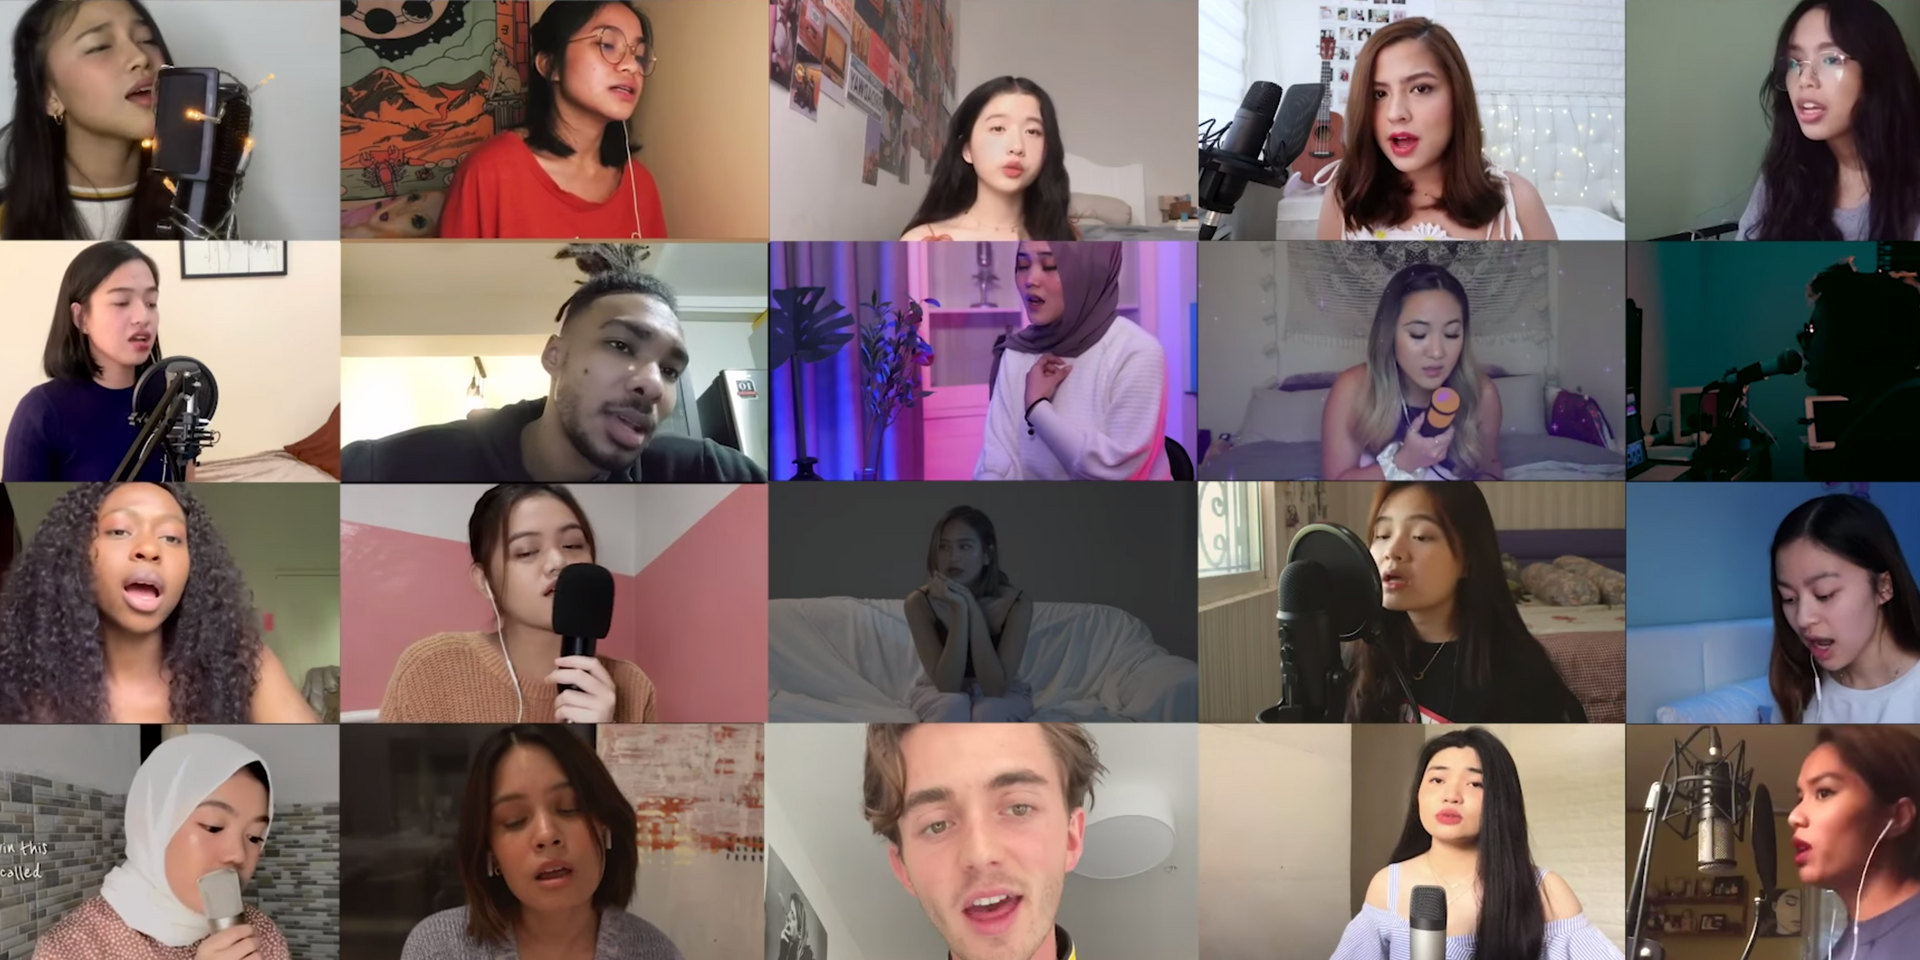 Fans around the world cover NIKI's 'Lose': Fern., Anneth Delliecia, Leila Alcasid, Greyson Chance, Tiffany Day, and more – watch